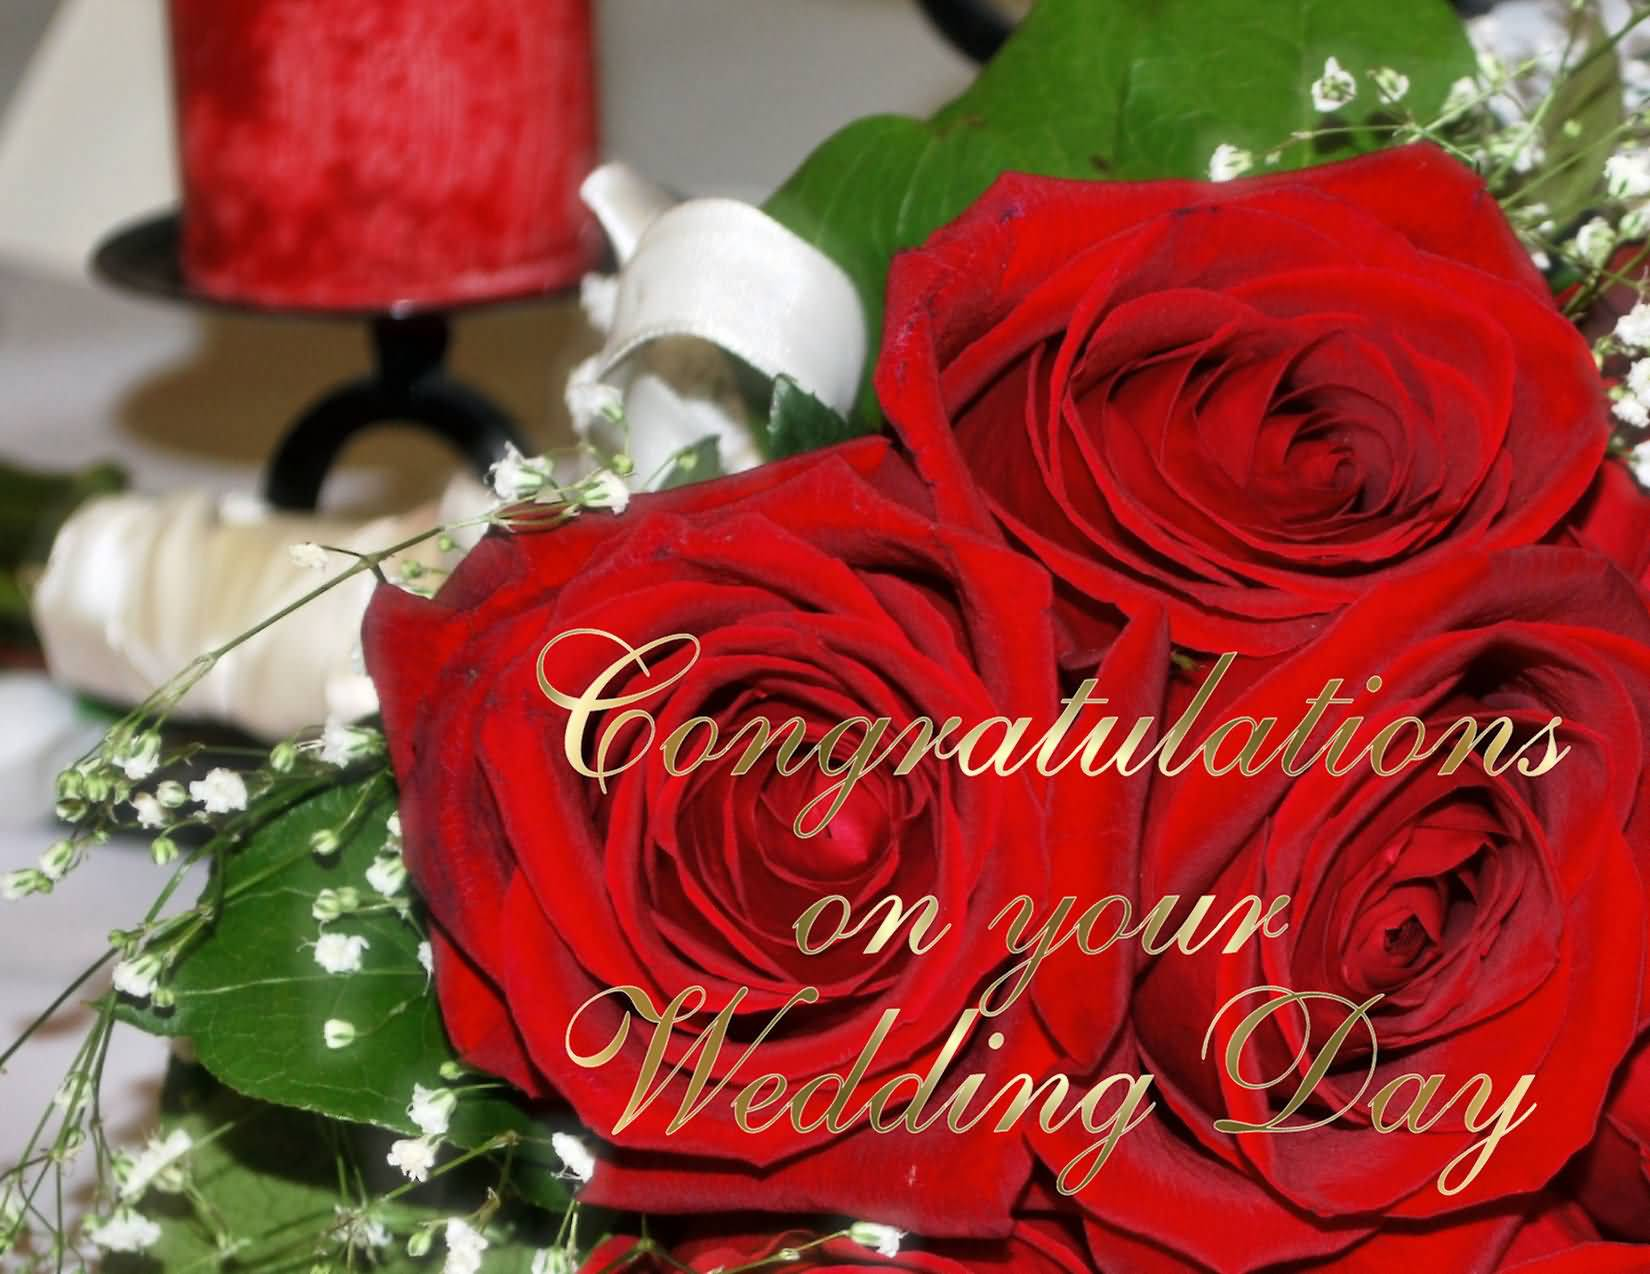 Congratulations On Your Wedding Wedding Wishes Images Free Download